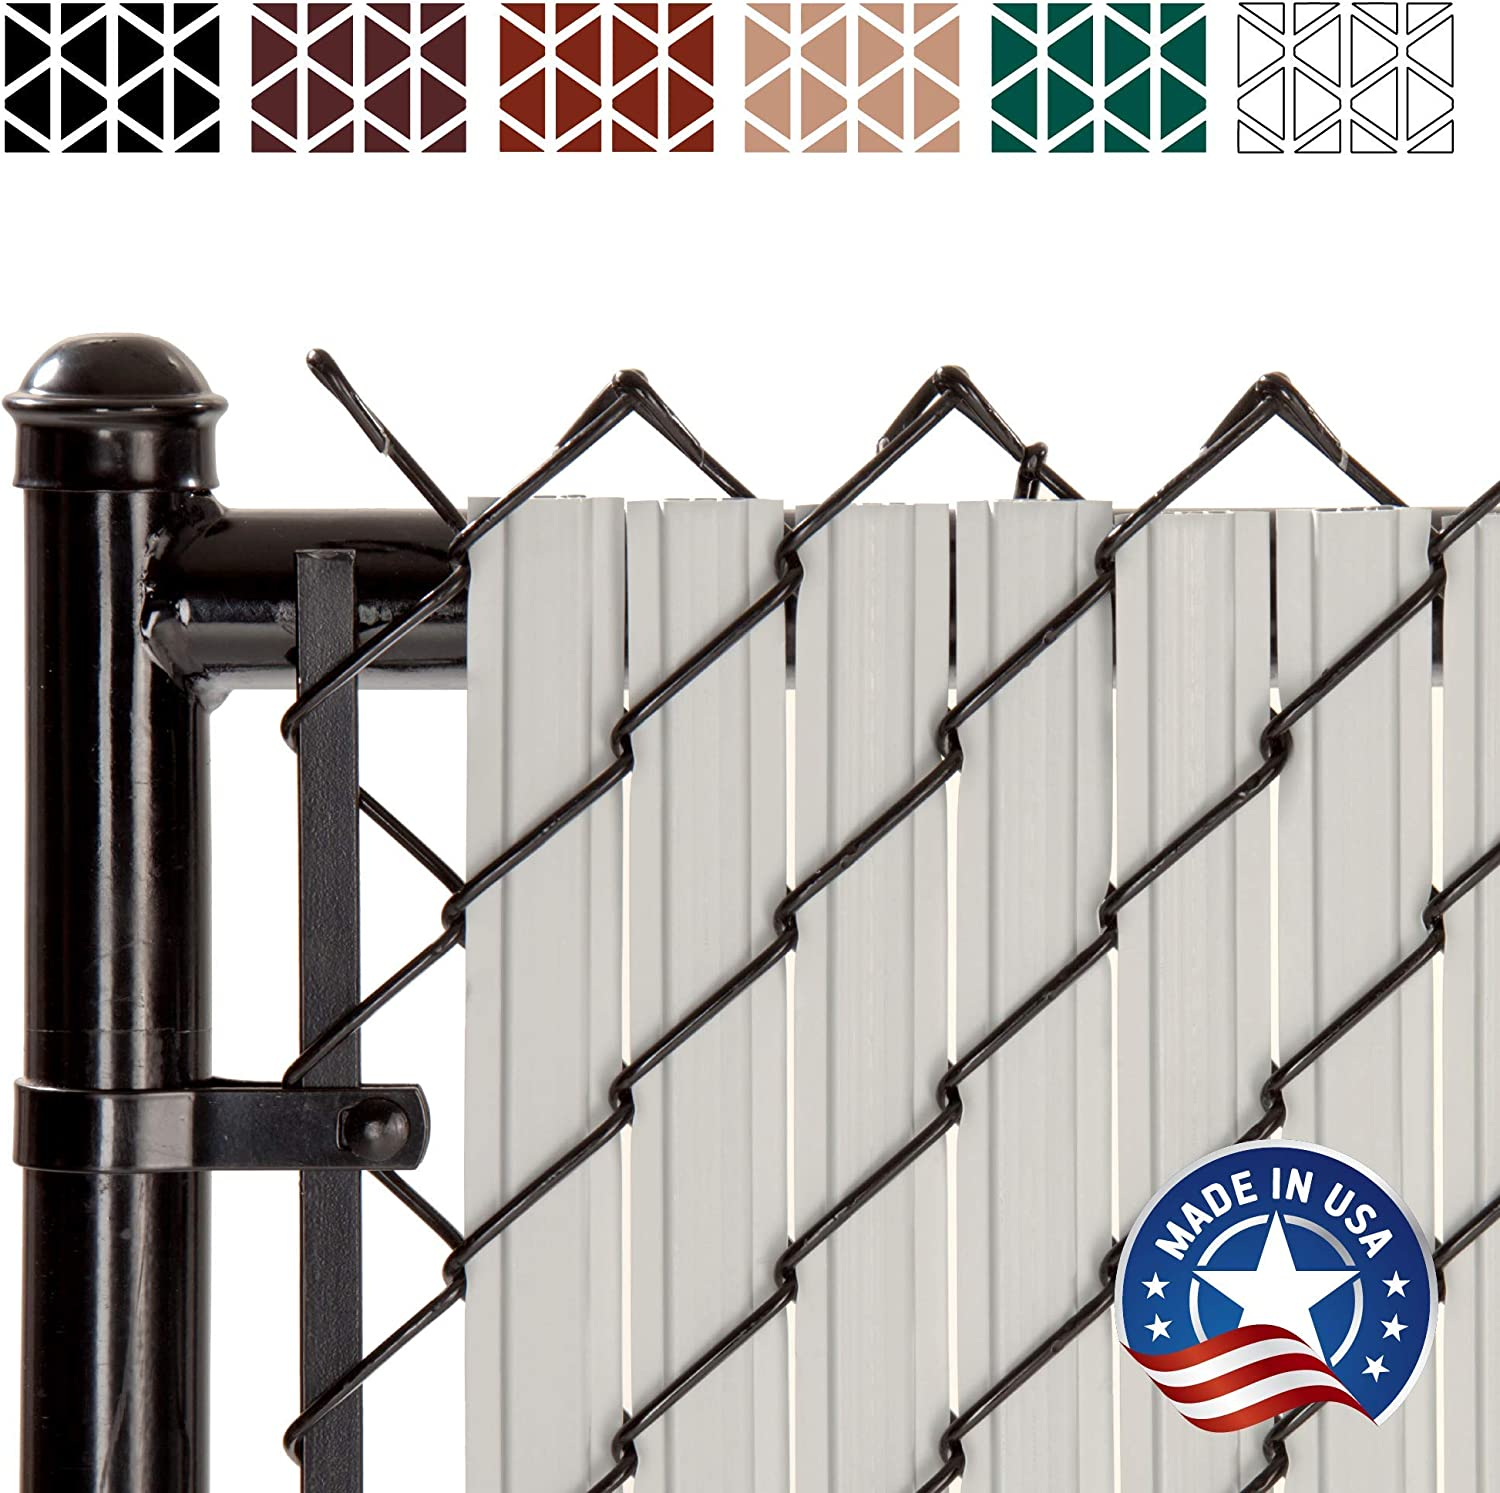 SoliTube Slat Privacy Inserts for Chain-Link Fence Double-Wall Vertical Bottom-Locking Slats with Wings for 6 Fence Height Gray